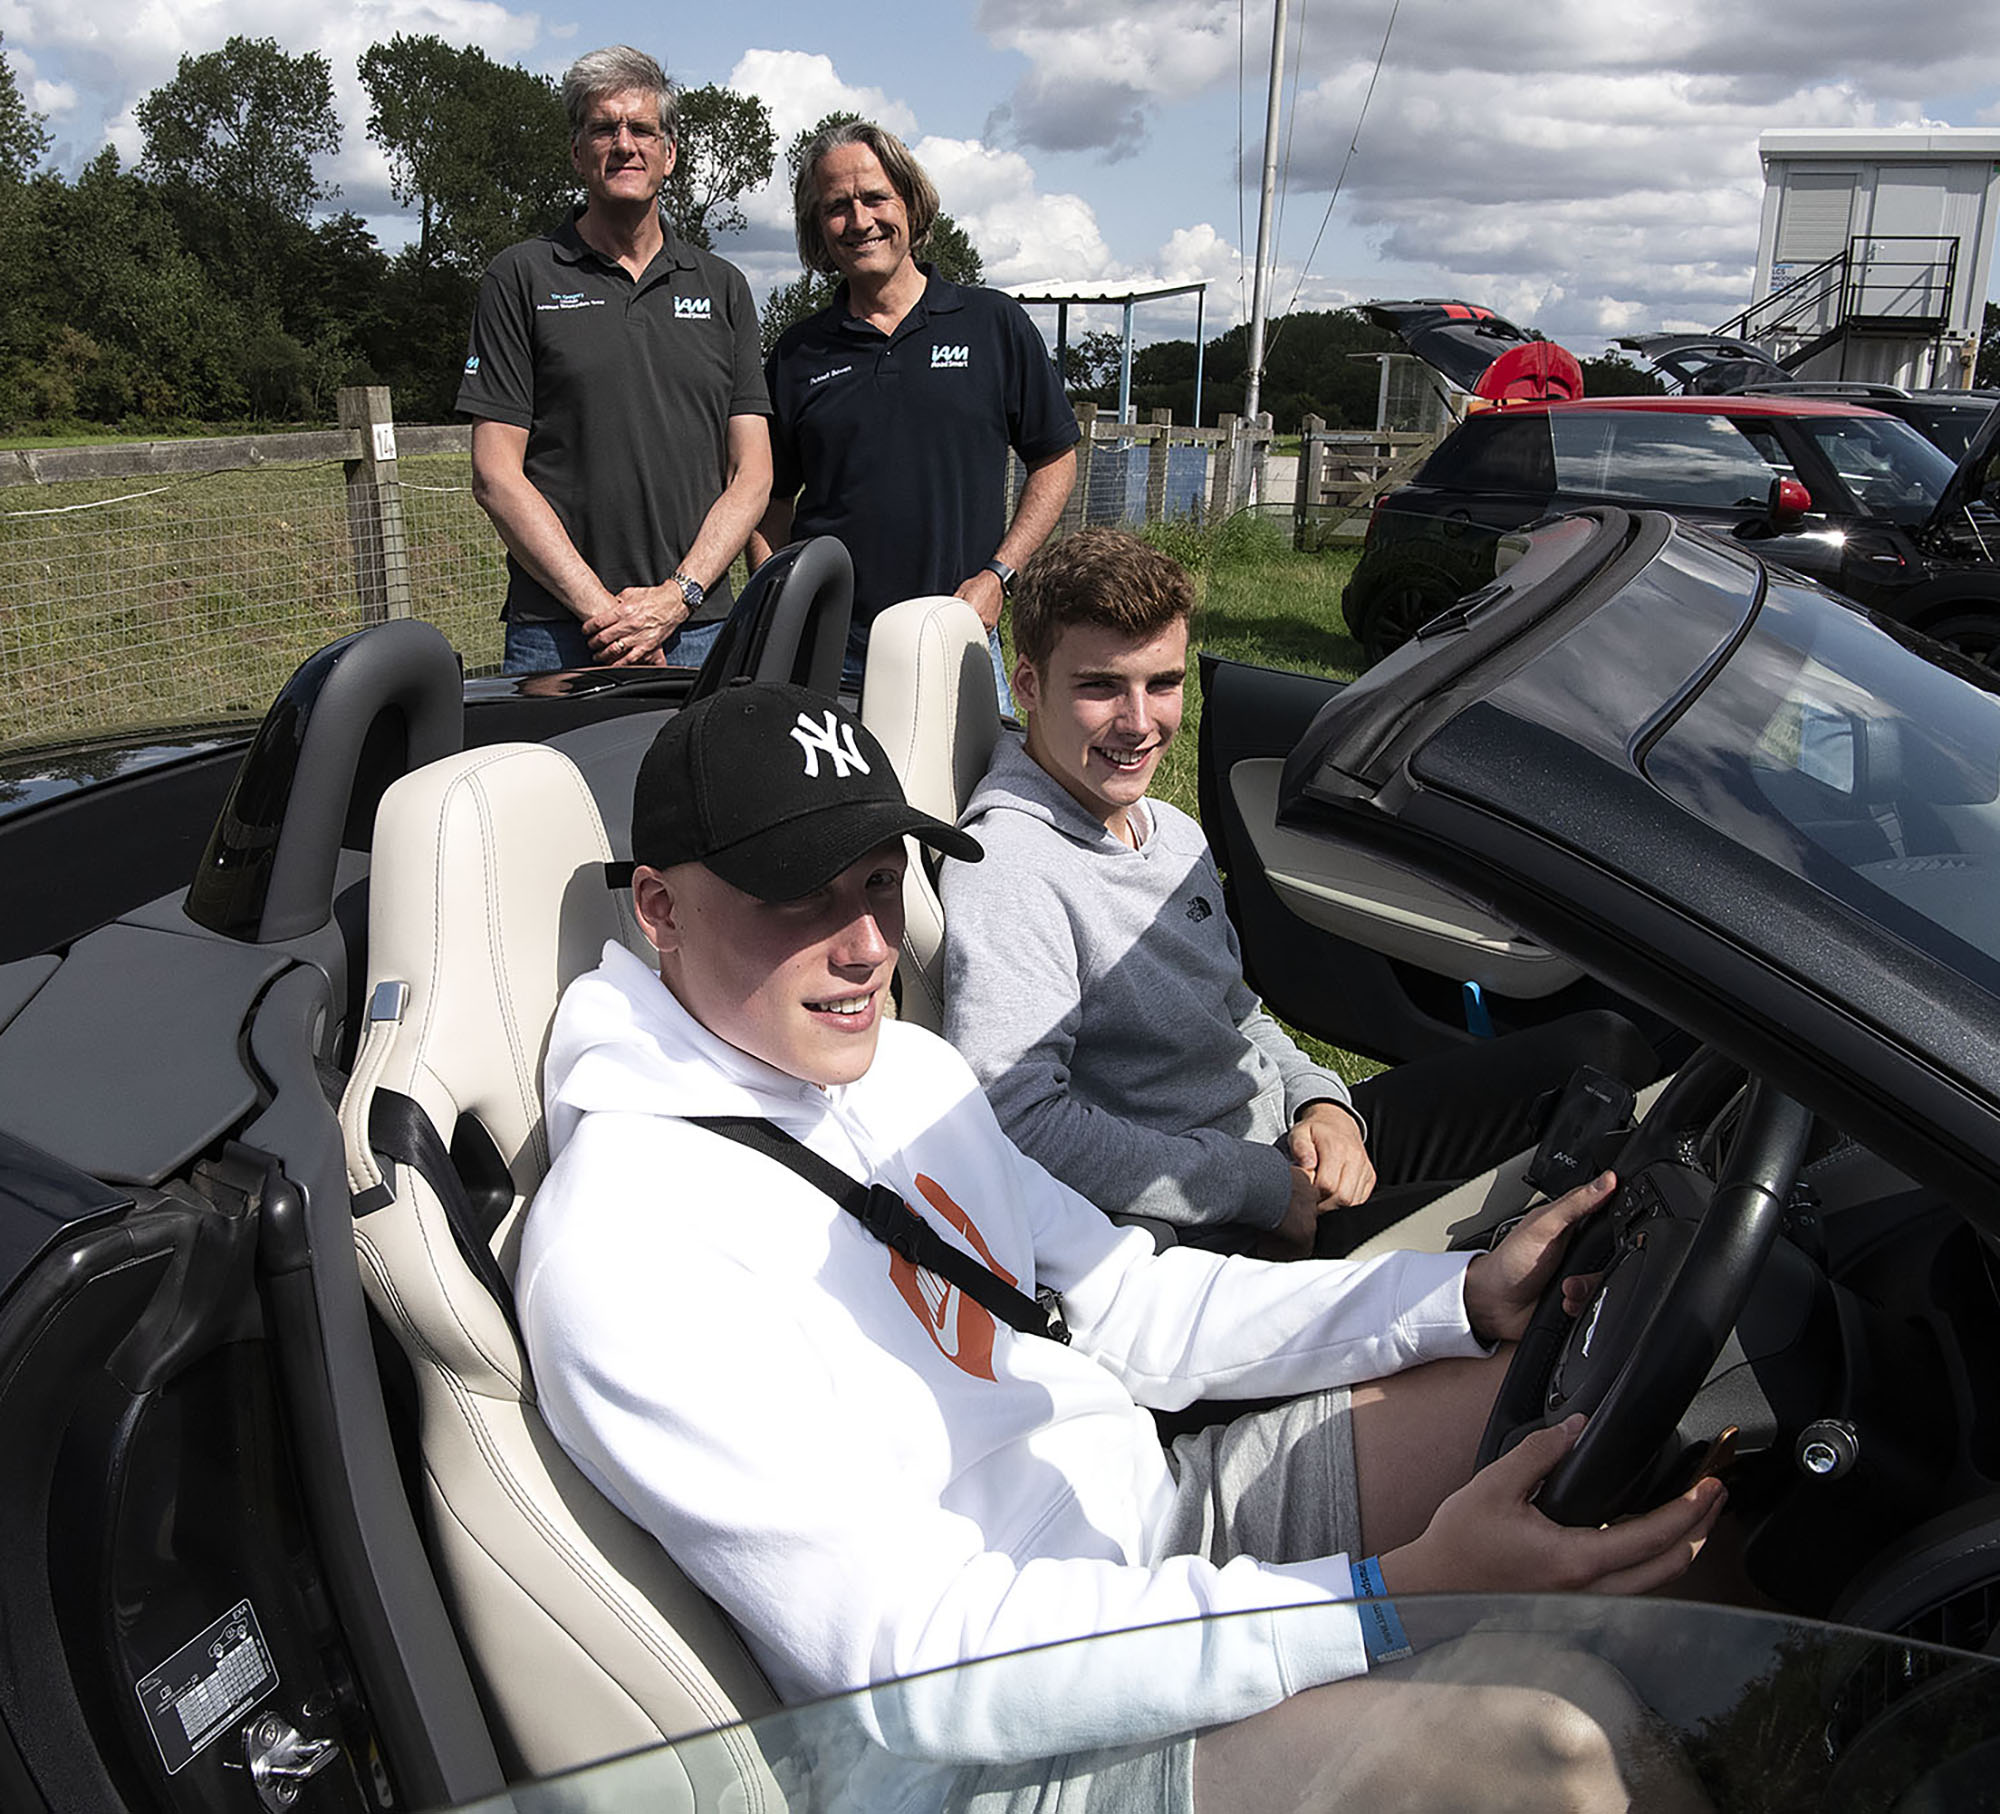 Young Drivers try out Advanced Motoring skills